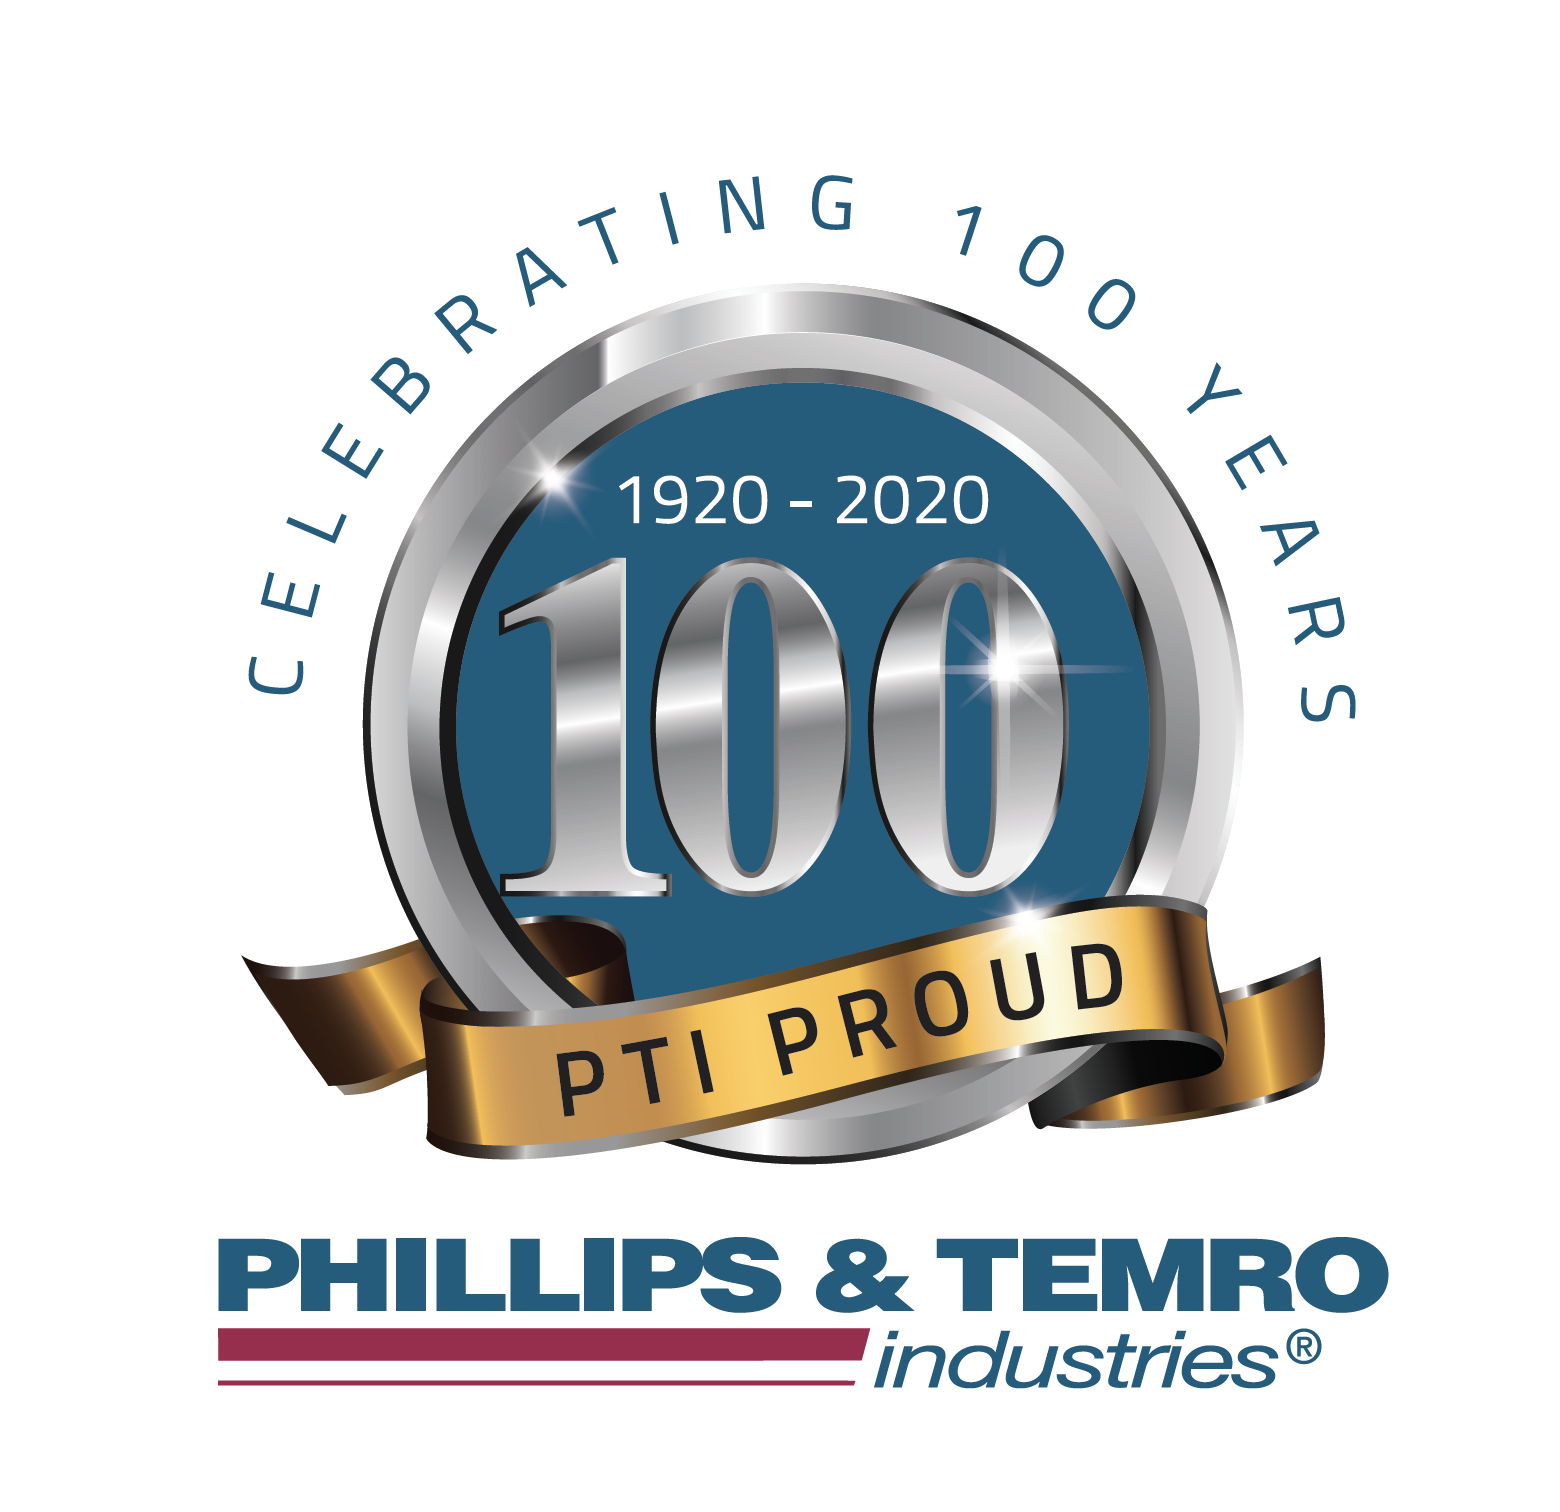 Phillips & Temro Industries Celebrates 100 Years of Excellence in Providing Custom Engineered Thermal Systems and Electrical Solutions